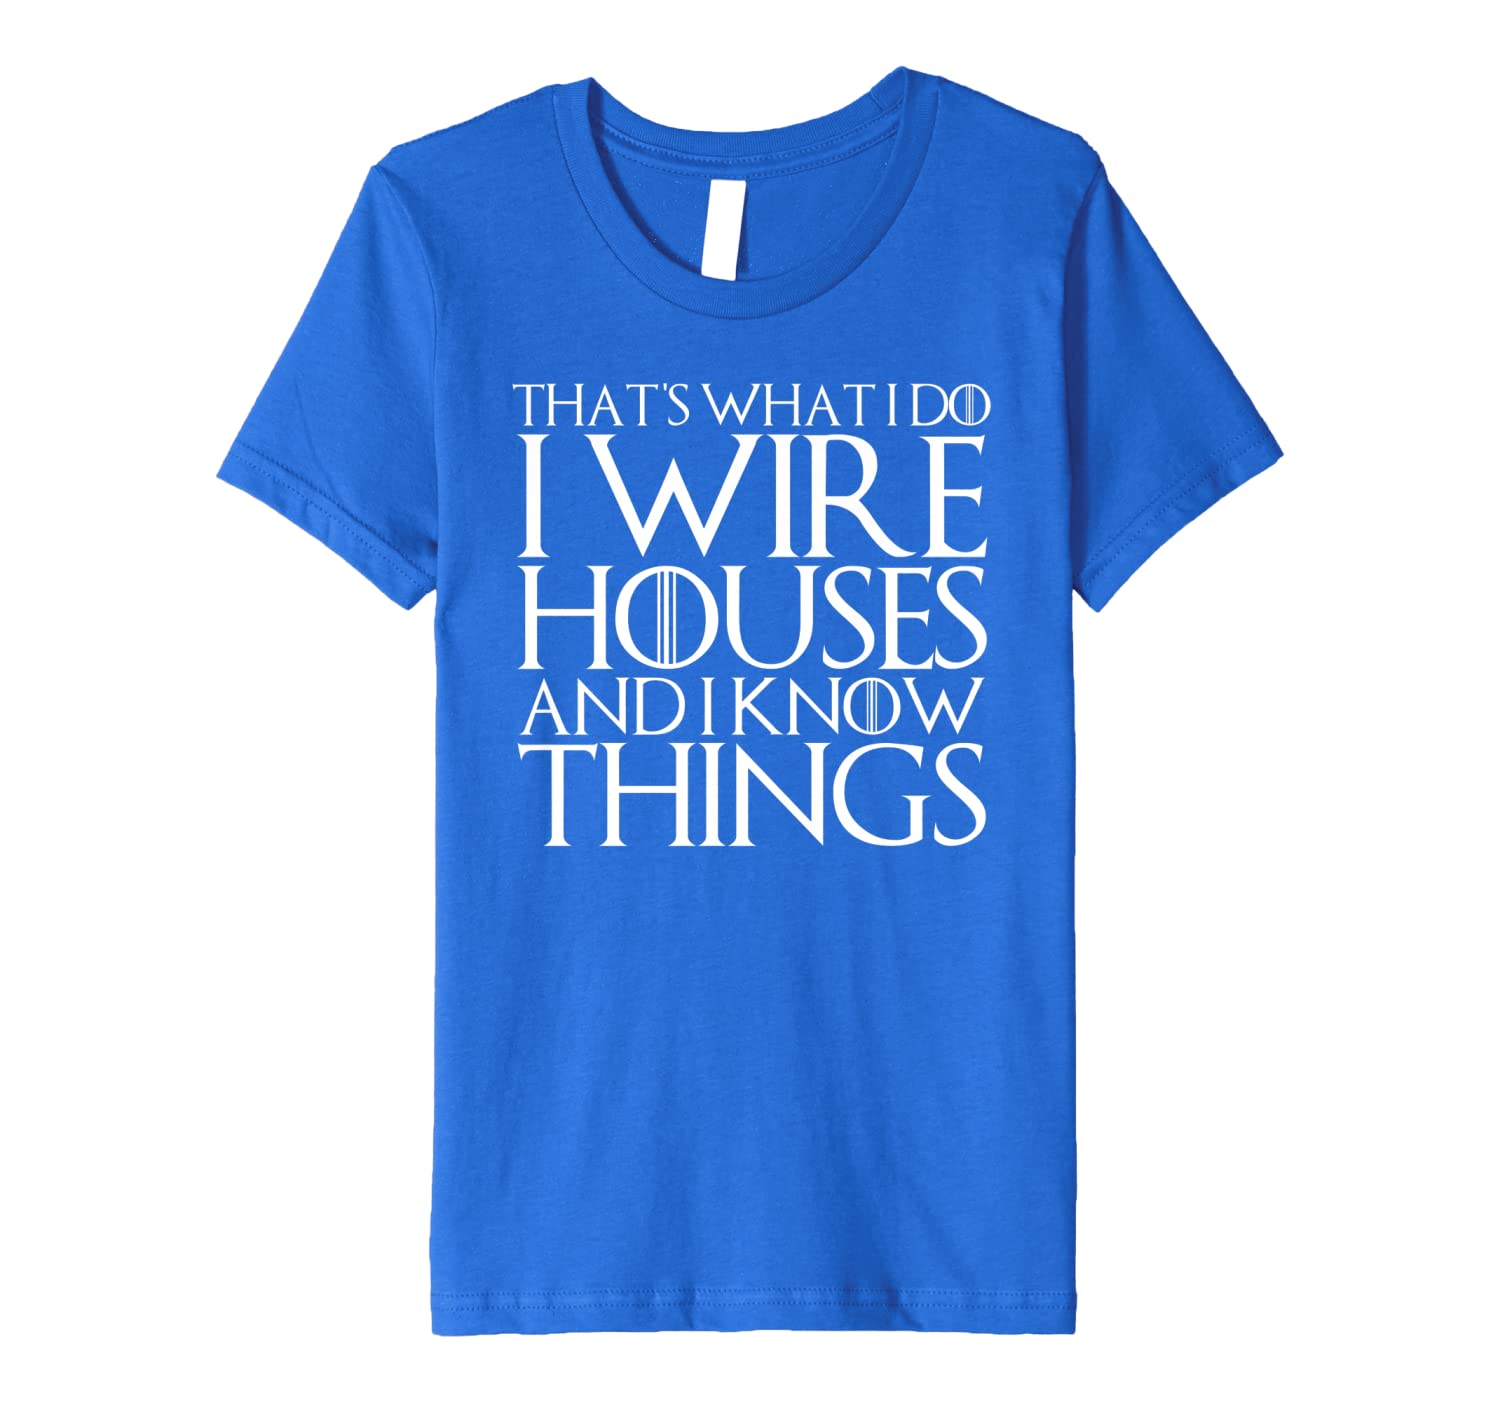 Amazon.com: THAT'S WHAT I DO I WIRE HOUSES AND I KNOW THINGS ... on